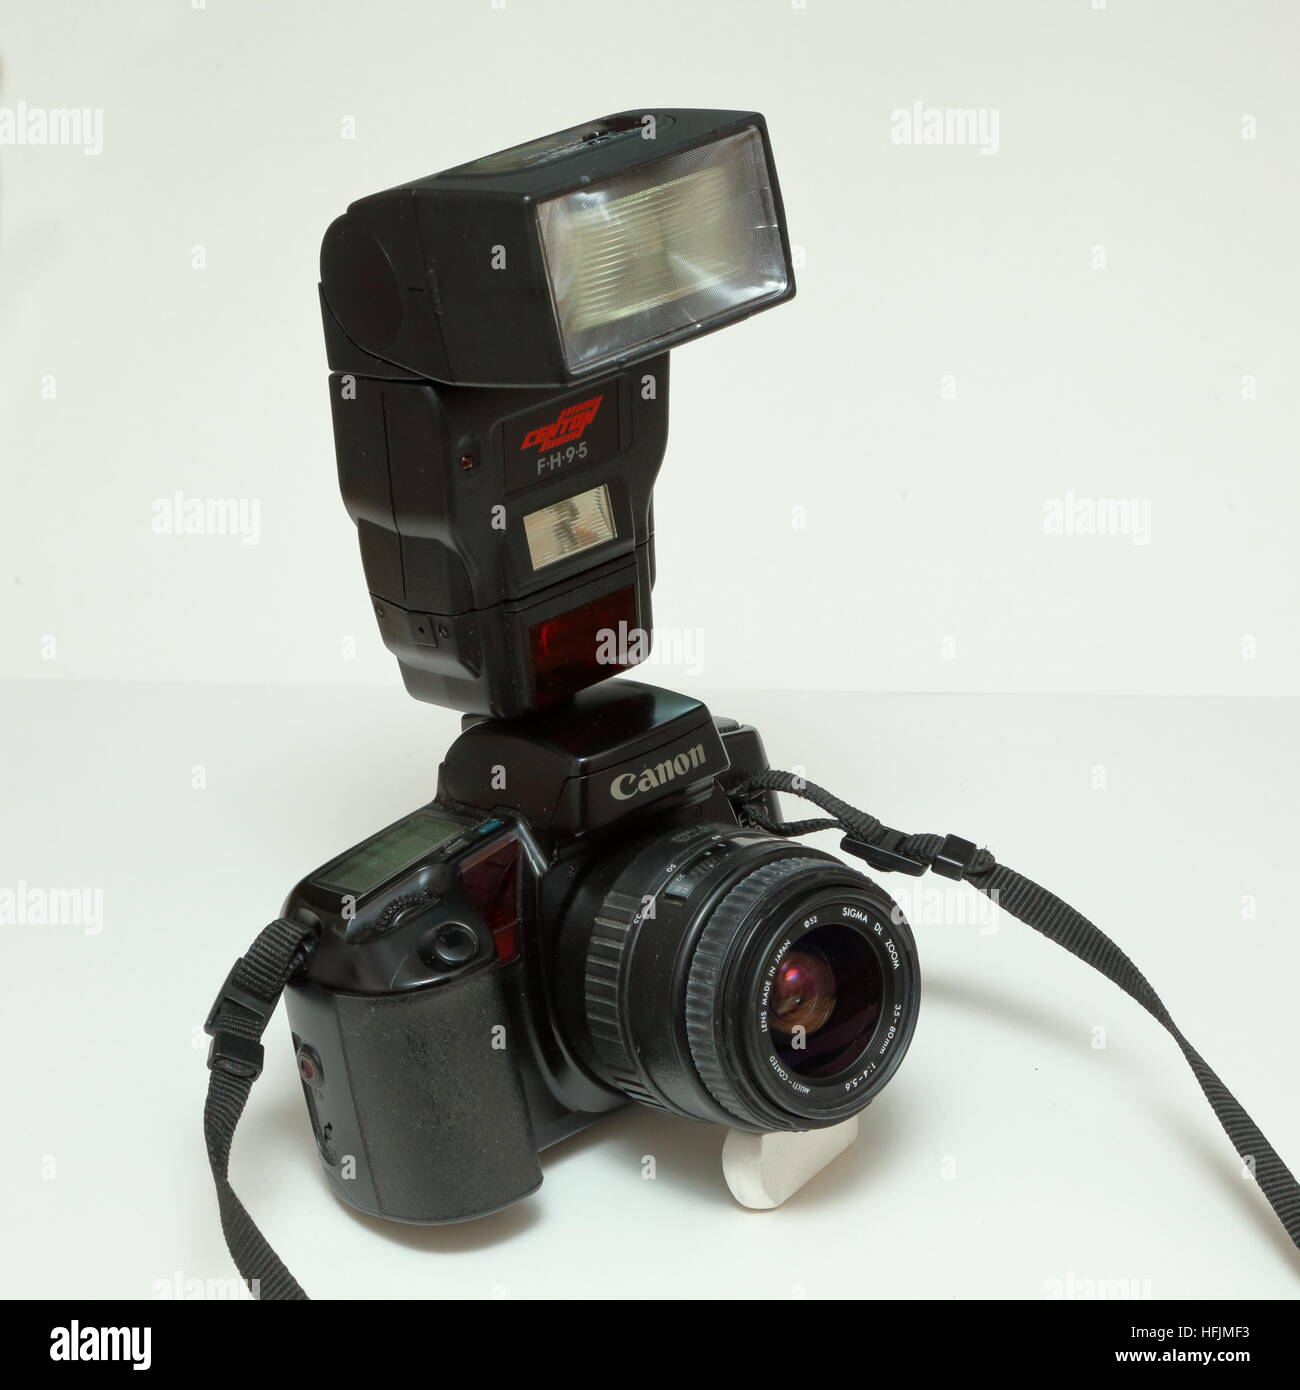 Canon EOS 100 35mm SLR film camera with Sigma 35-80mm lens and Centon FH95 flashgun in forward facing position from - Stock Image